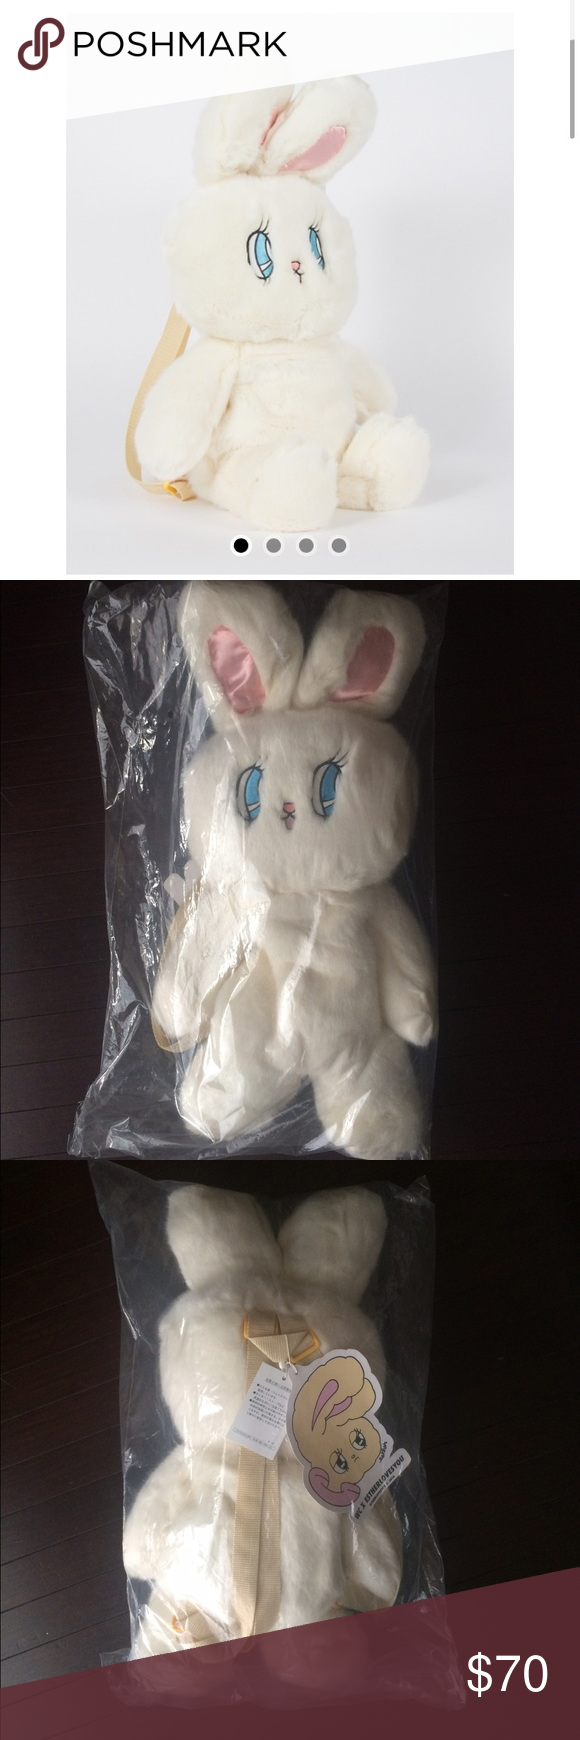 bdd2fb785ed ESTHER KIM LOVES LAZY OAF WC BUNNY BACKPACK This is a brand new with tags  Esther